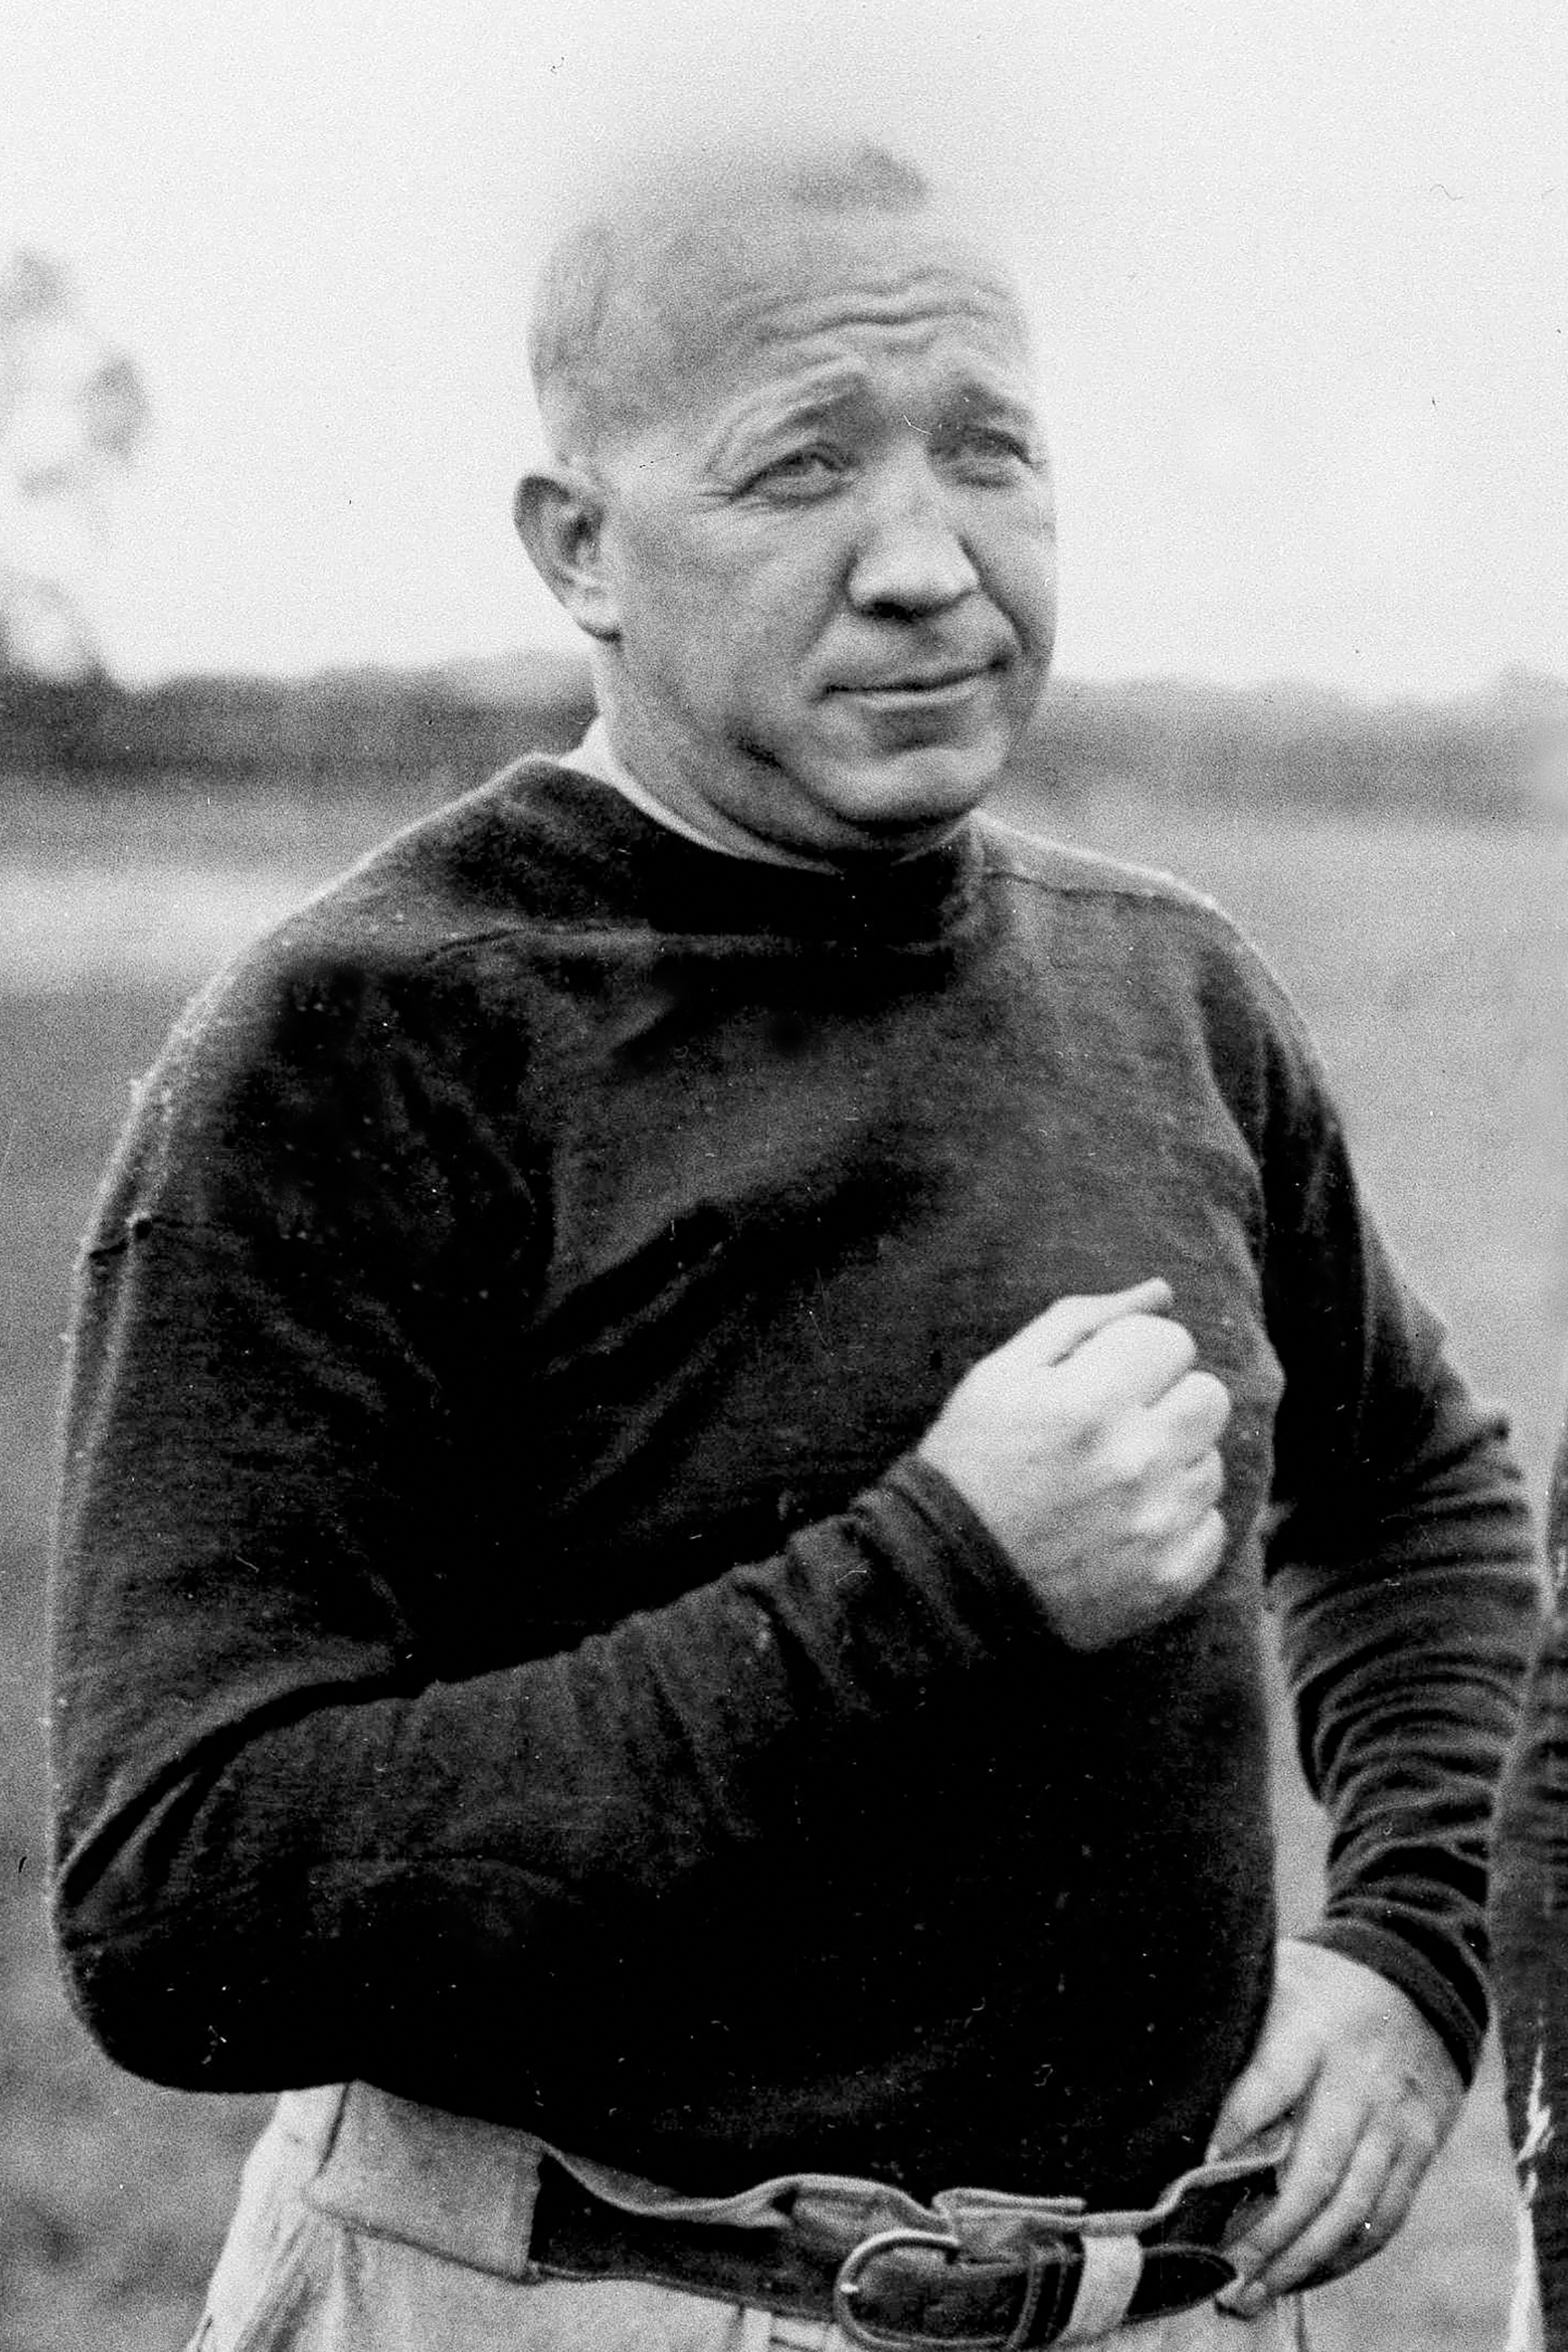 Throughout Knute Rockne's coaching tenure, the Irish played at Soldier Field seven times.